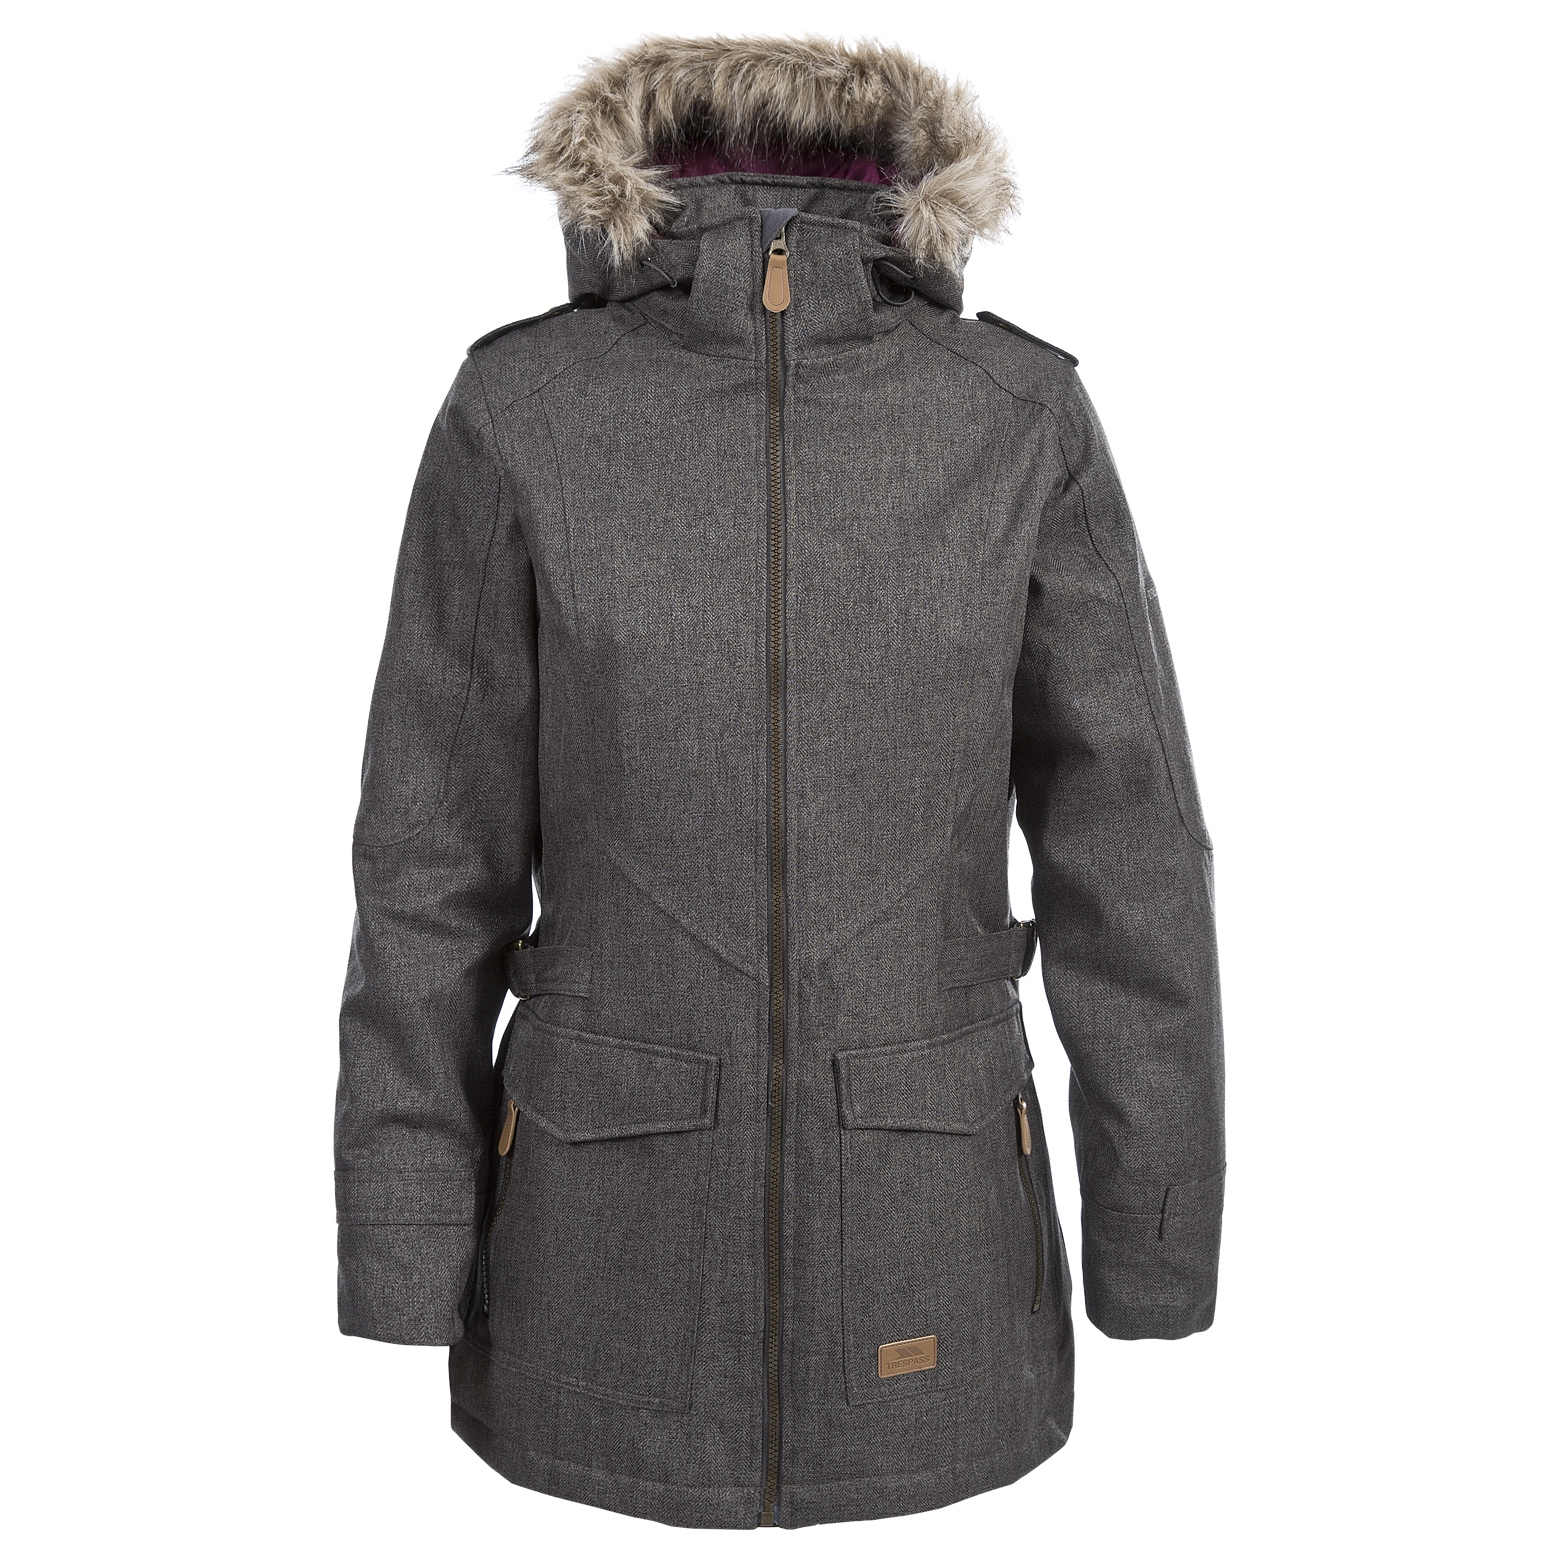 Trespass-Womens-Parka-Jacket-Waterproof-Longline-Padded-Raincoat thumbnail 14